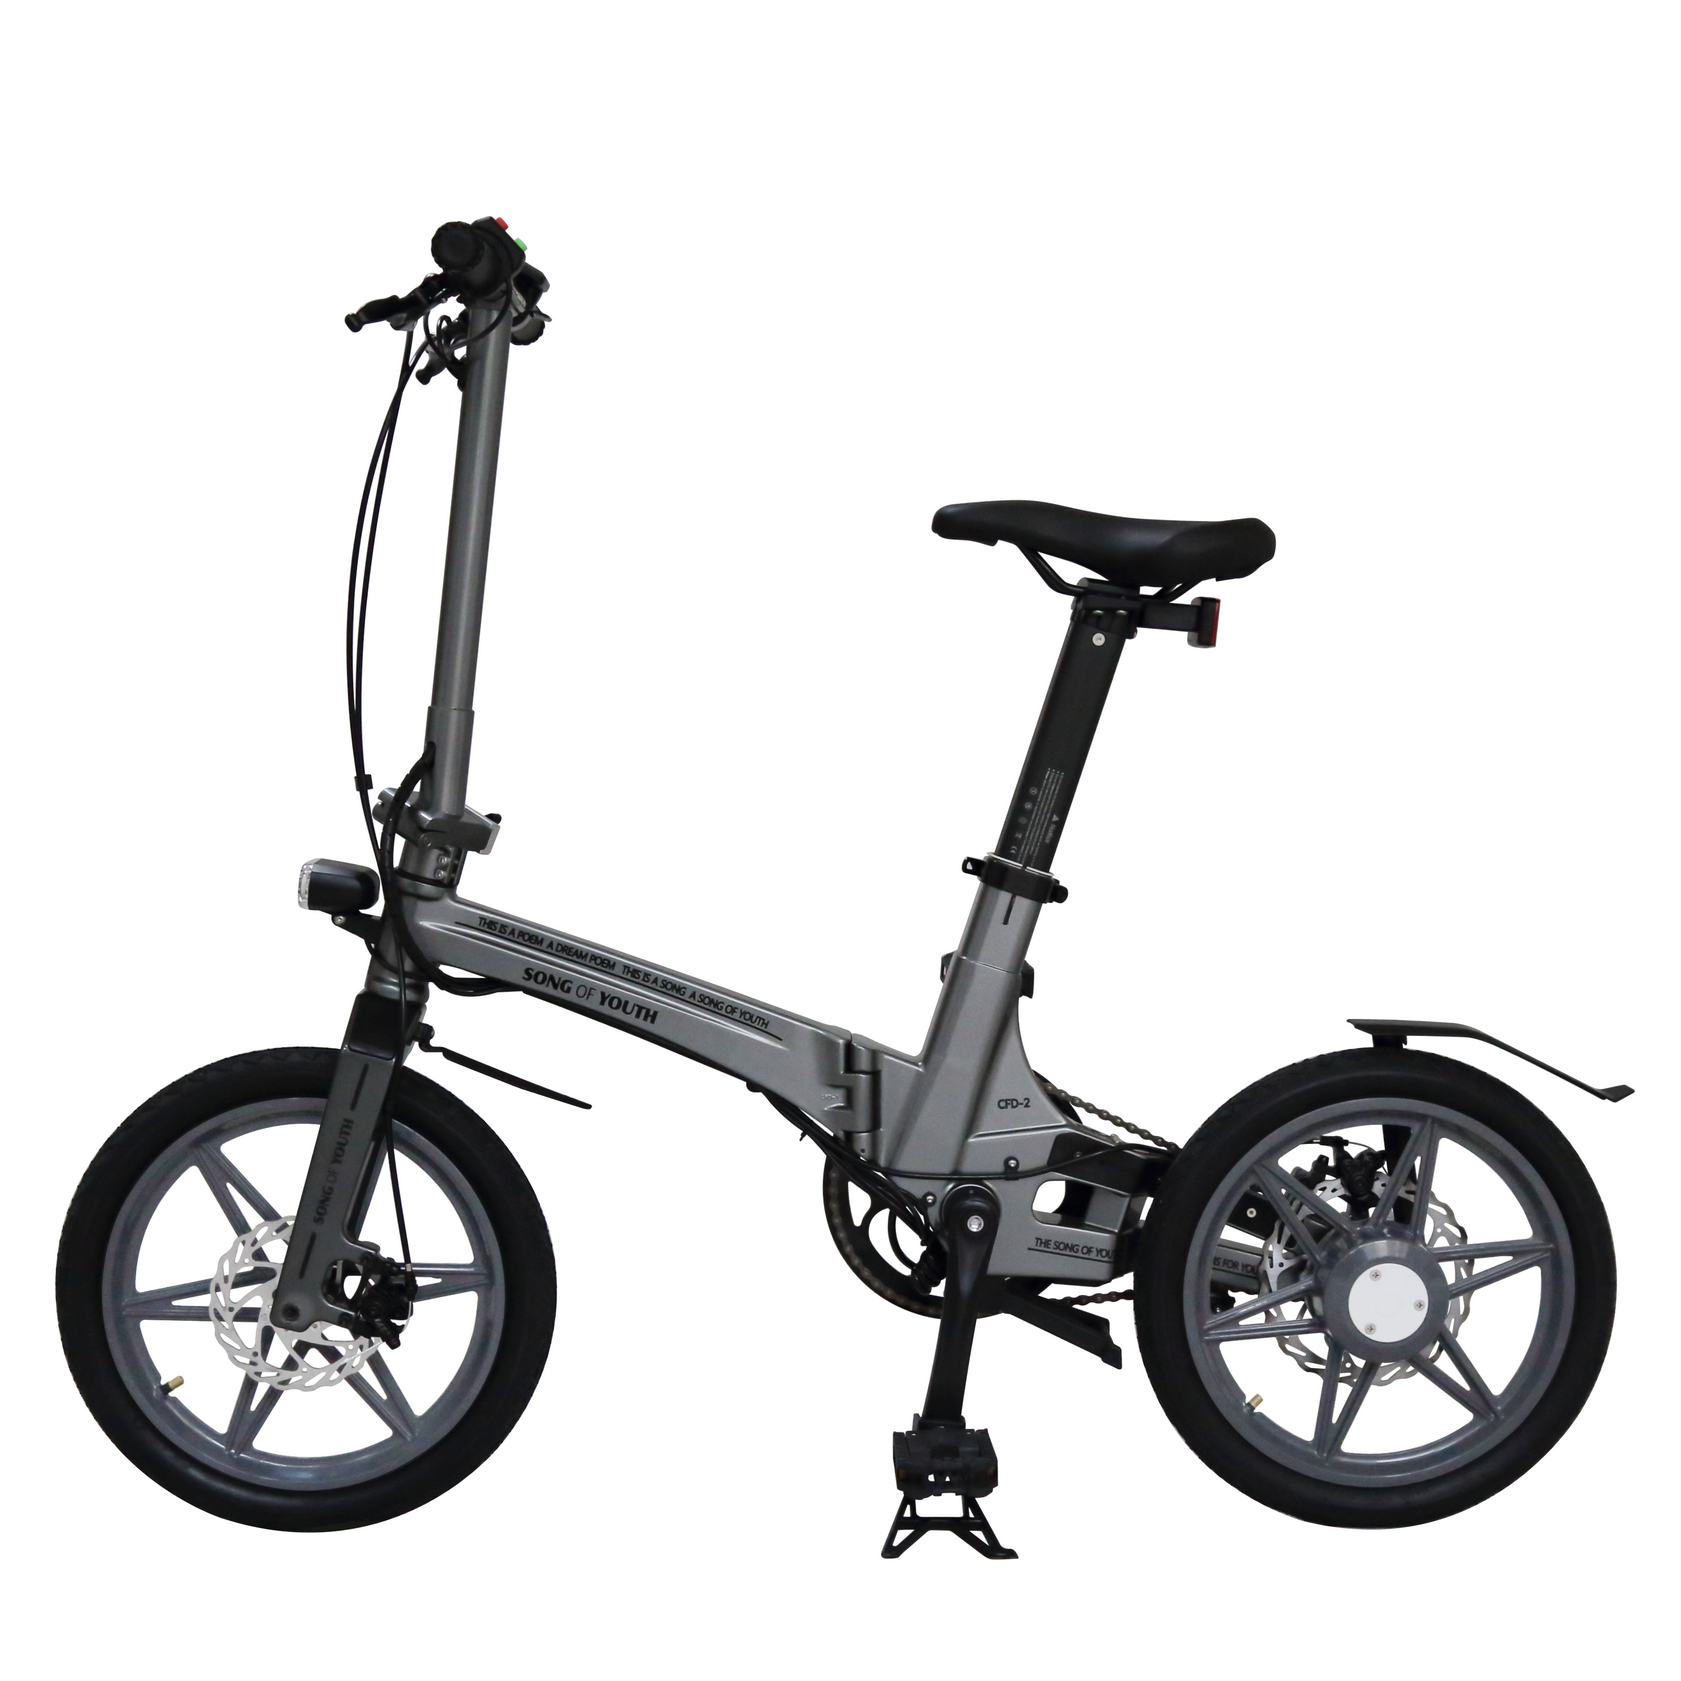 2019 new style foldable electric bicycle 36V 250W <strong>folding</strong> E bicycle hotsale Ebike